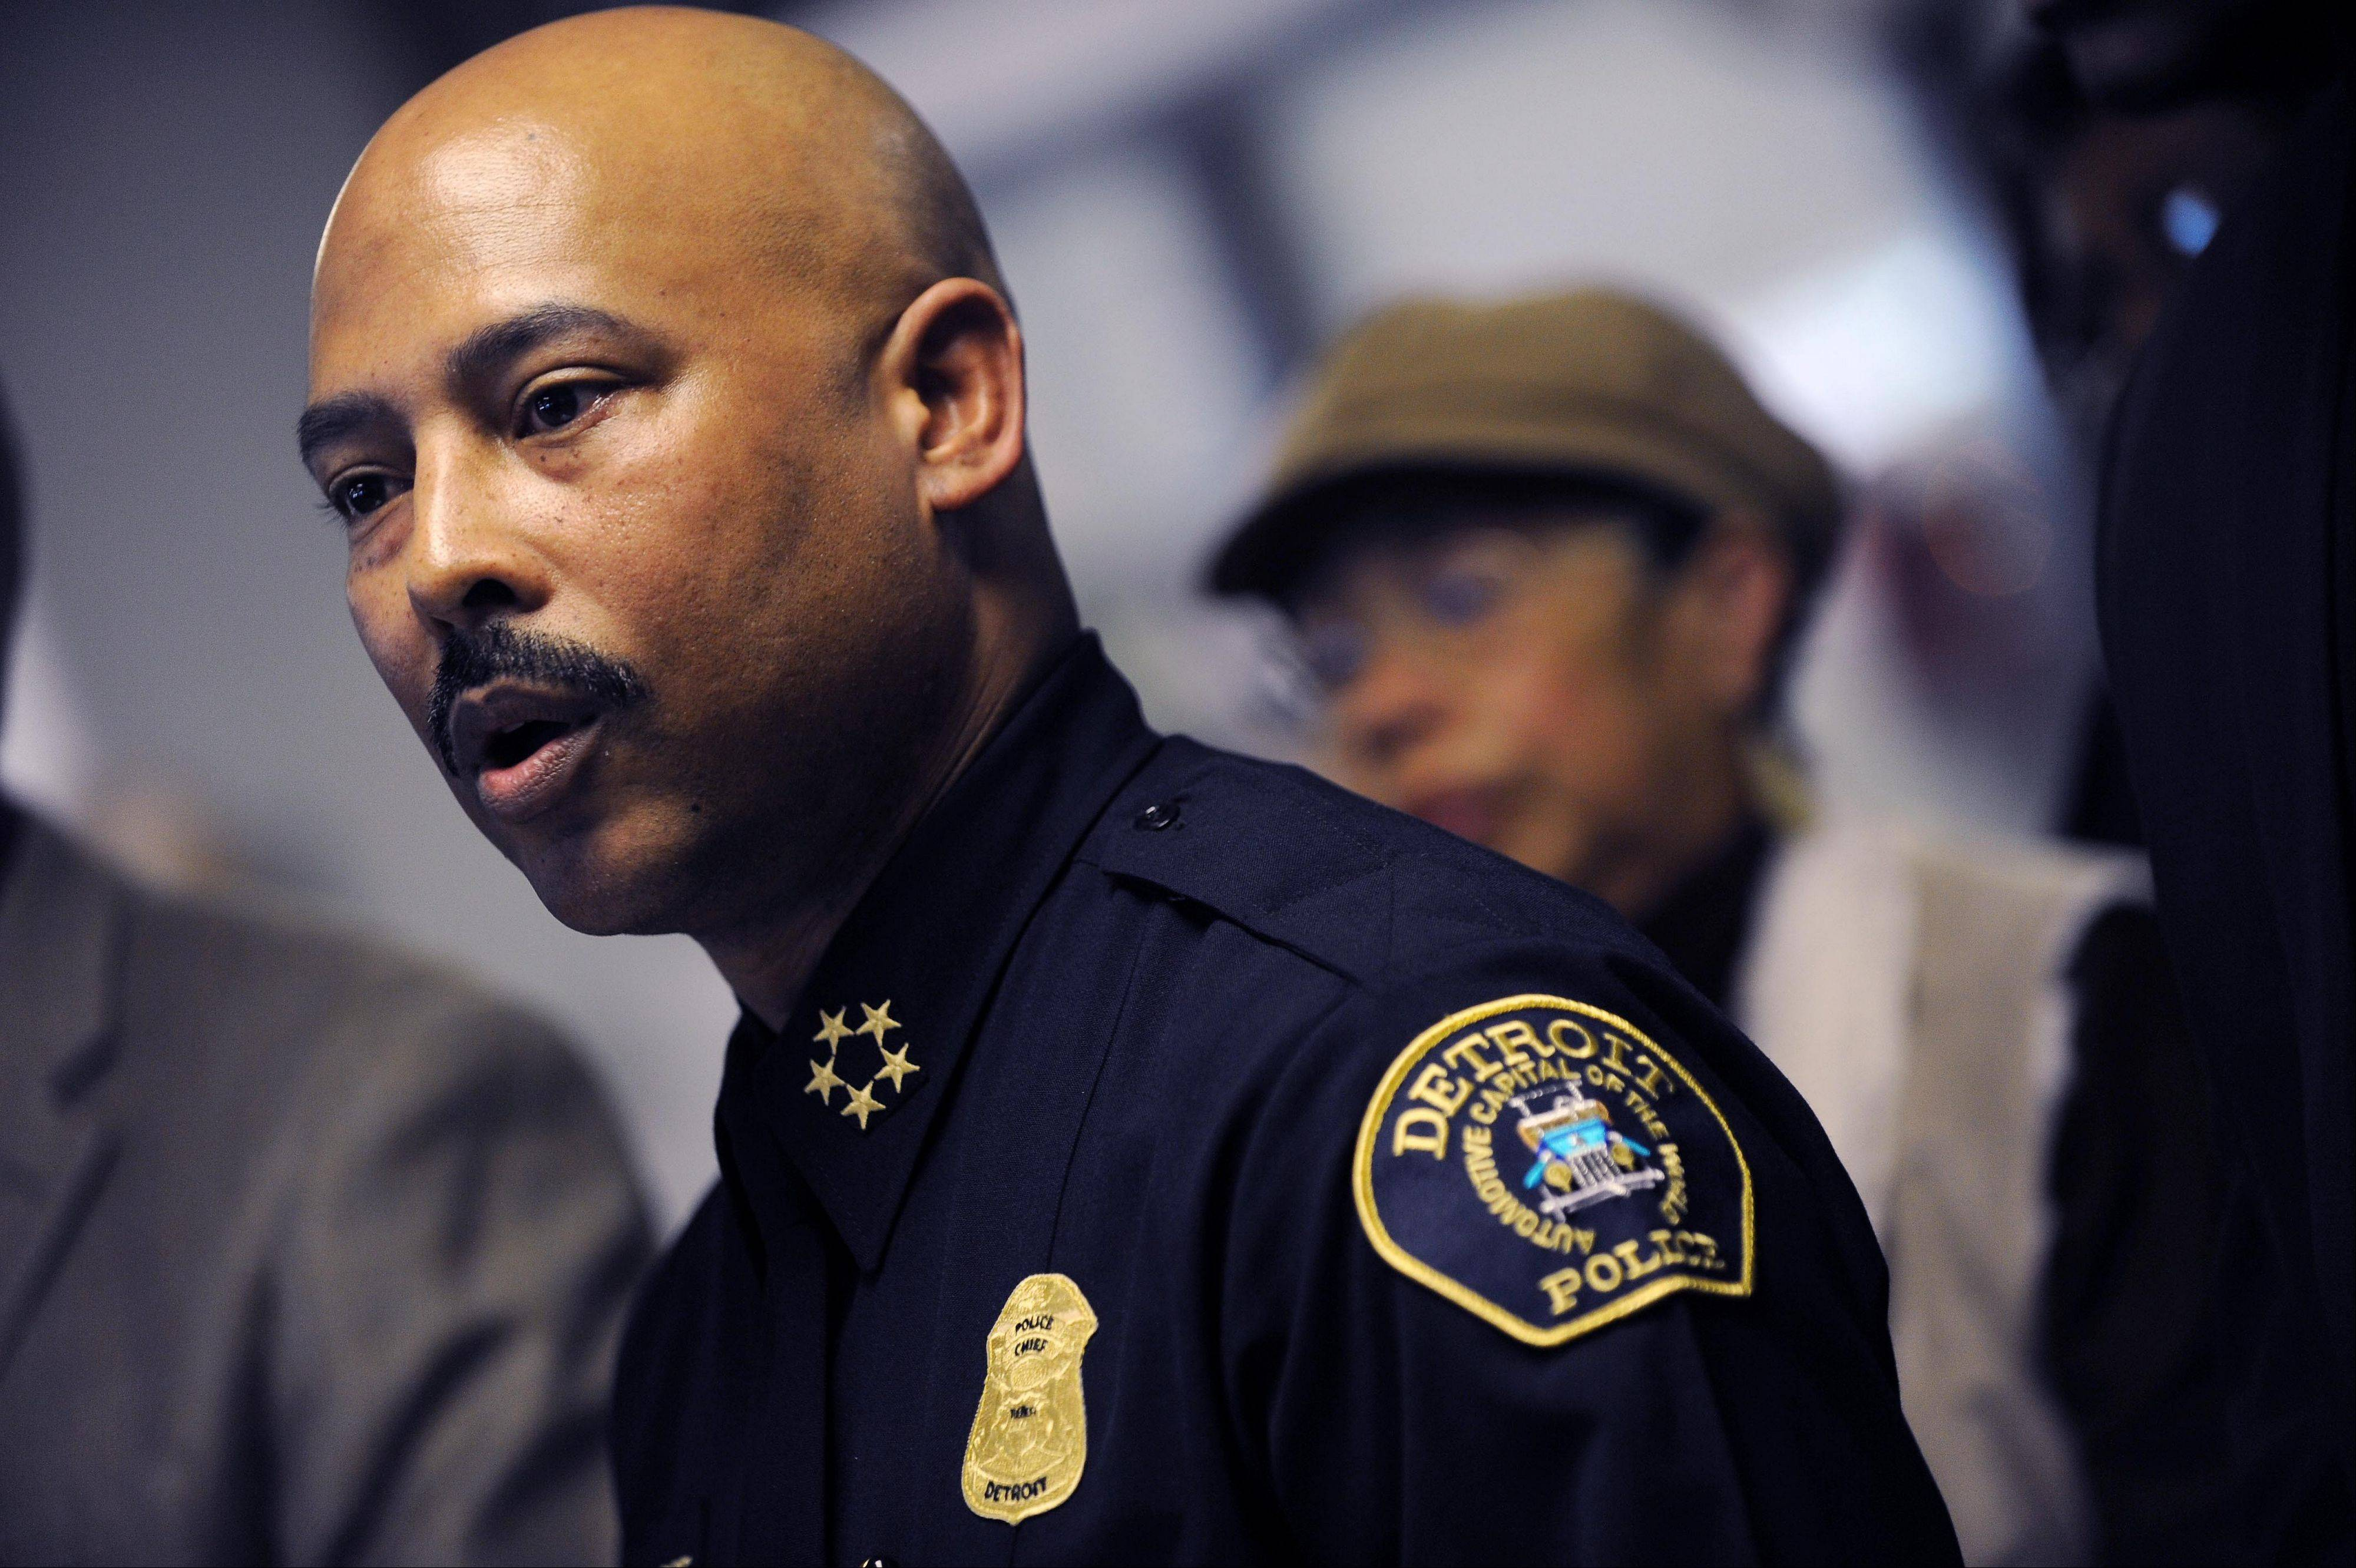 Detroit Police Chief Ralph Godbee has stepped down after an internal affairs officer revealed the chief had been in a sexual relationship with a subordinate.